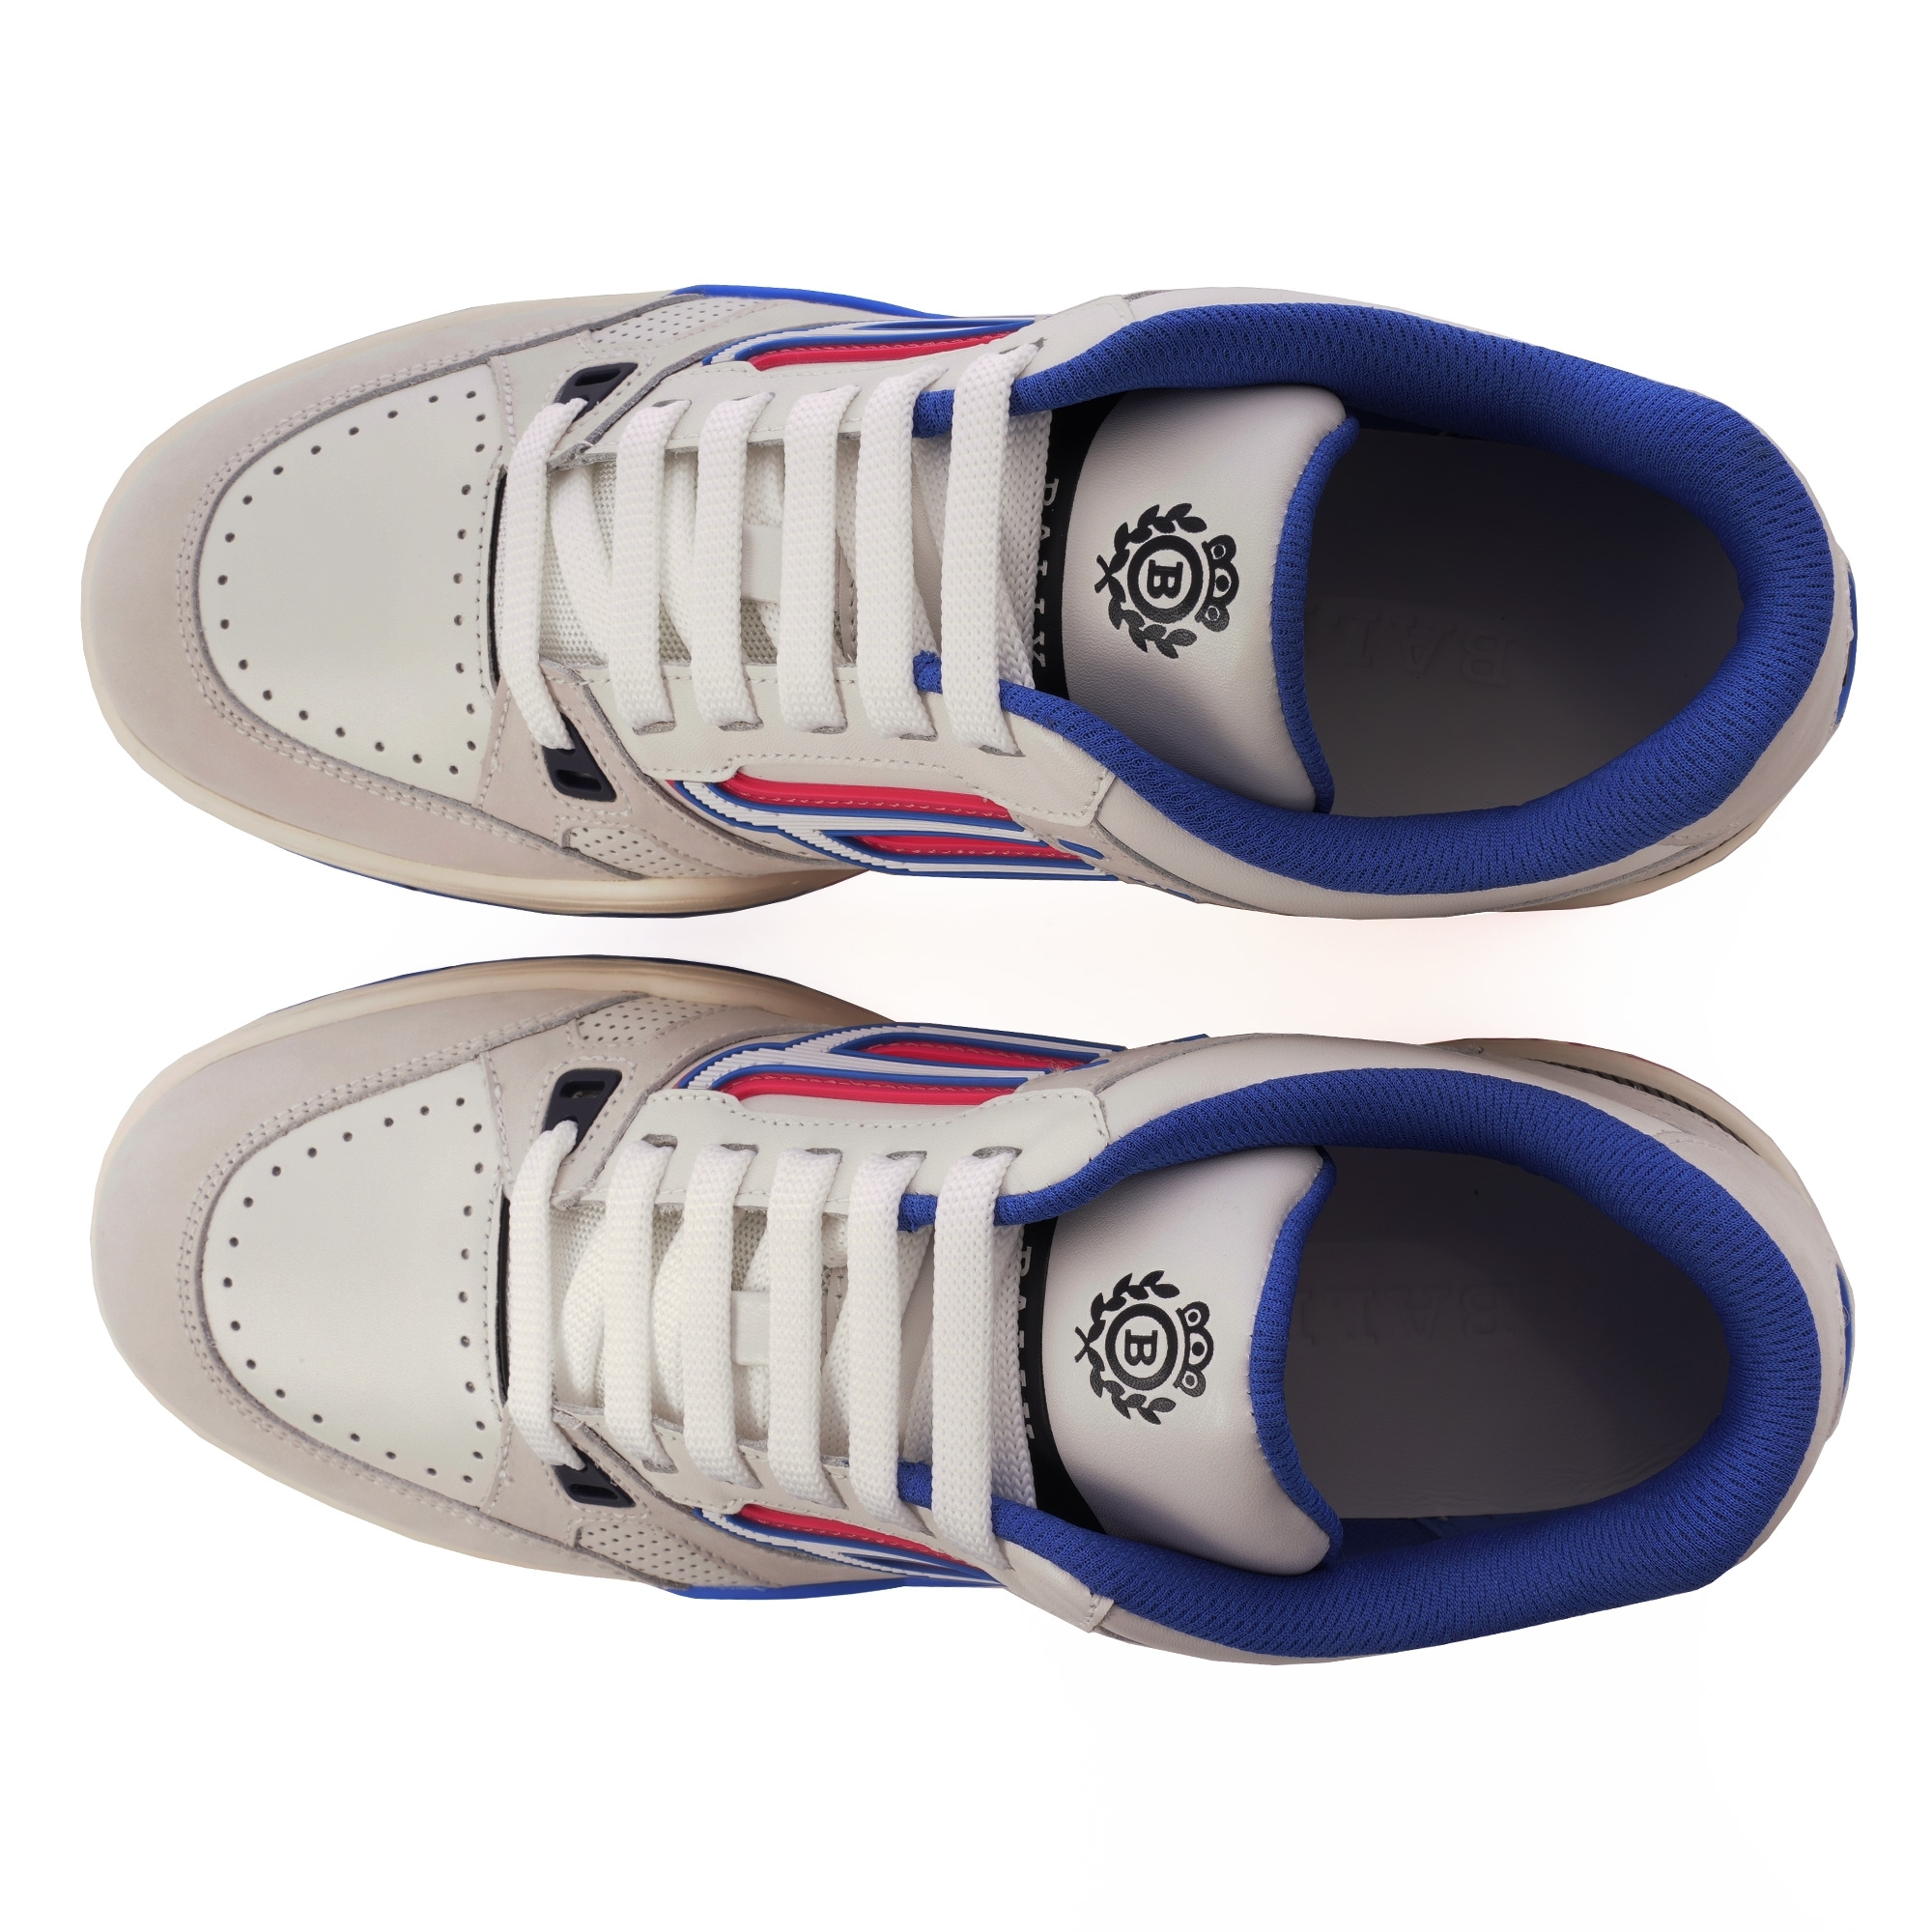 0f204290a74 Bally Champion Calf Leather Sneakers (White   Electric Blue) at ...